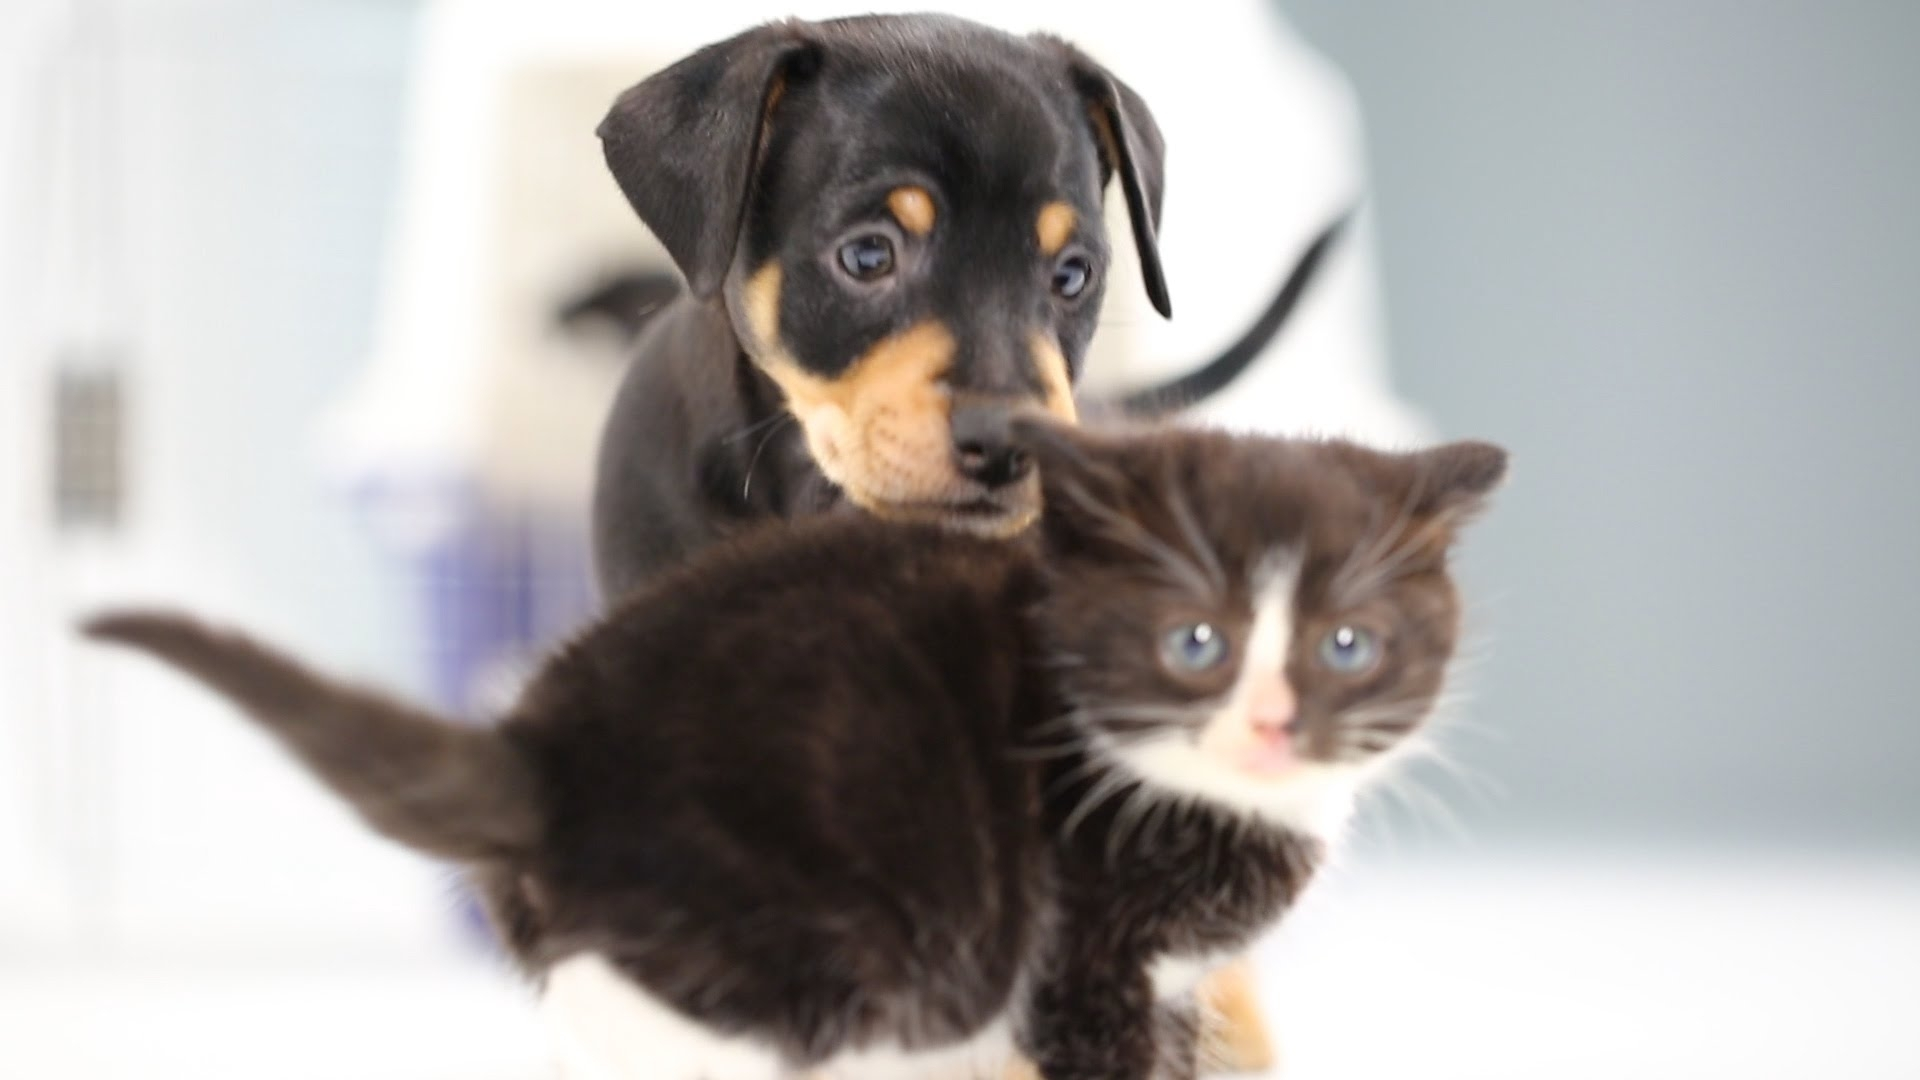 kittens meet puppies for the first time - youtube